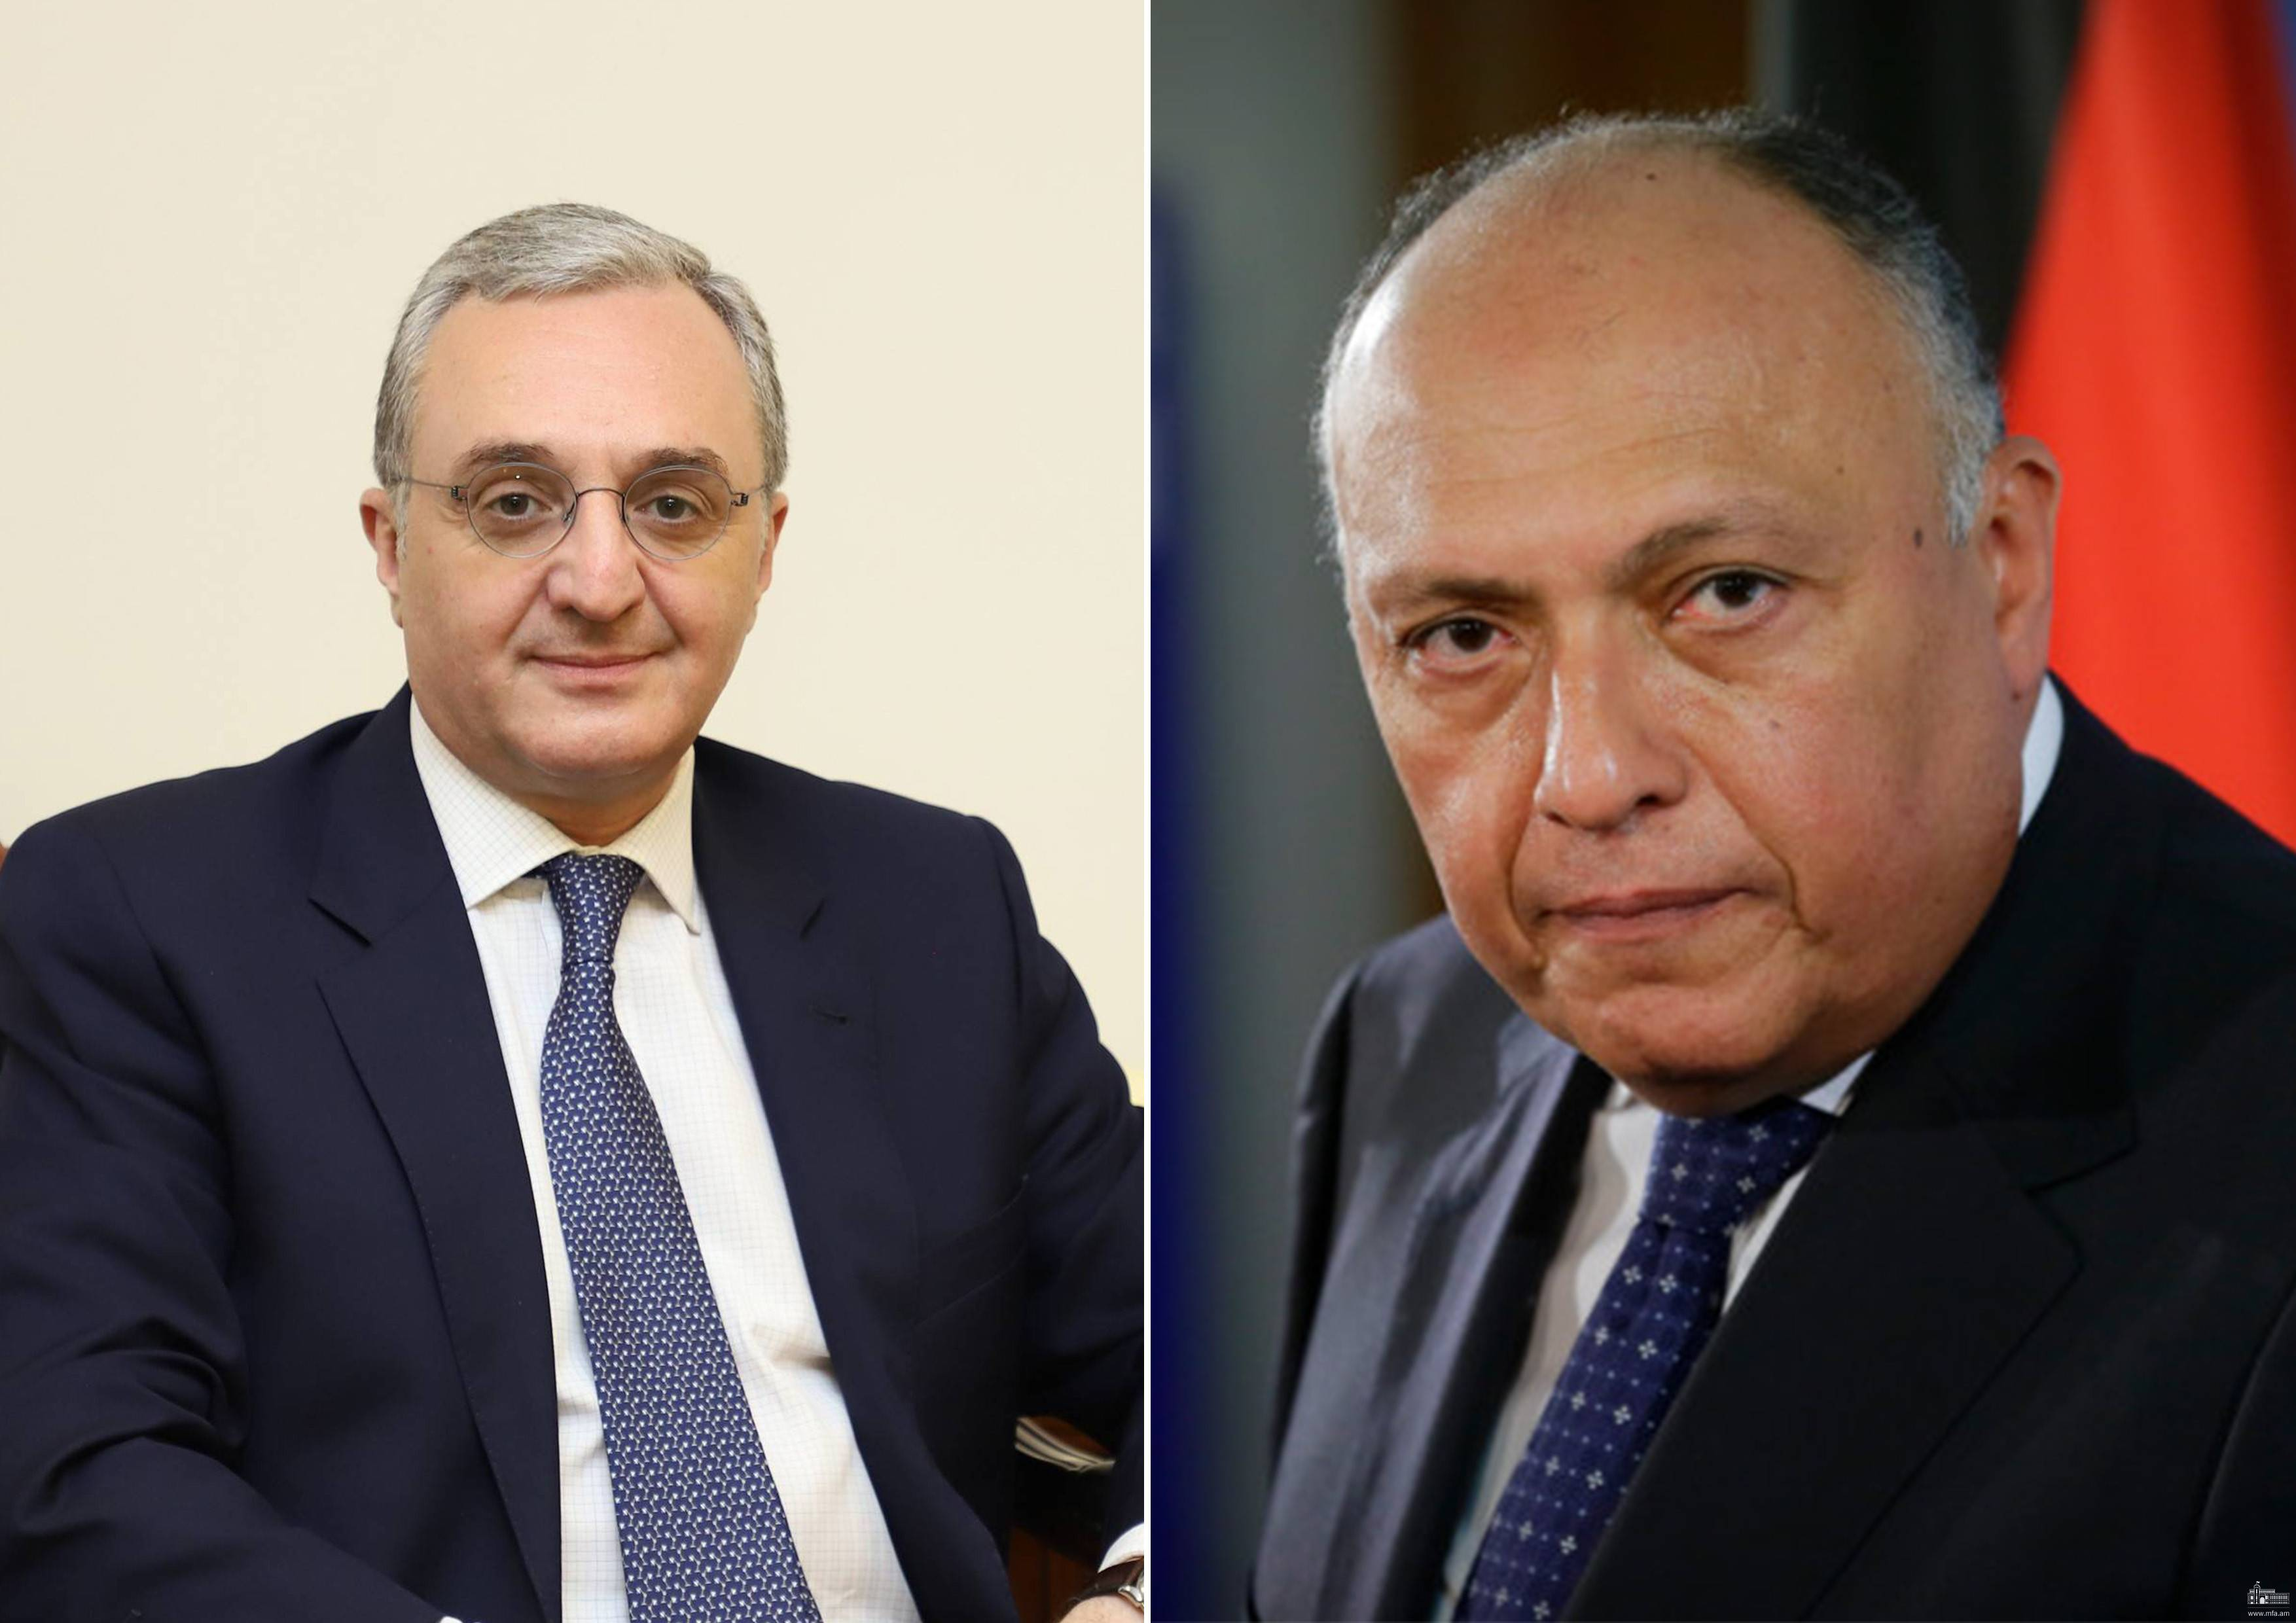 Foreign Minister Zohrab Mnatsakanyan had a phone conversation with the Foreign Minister of Egypt